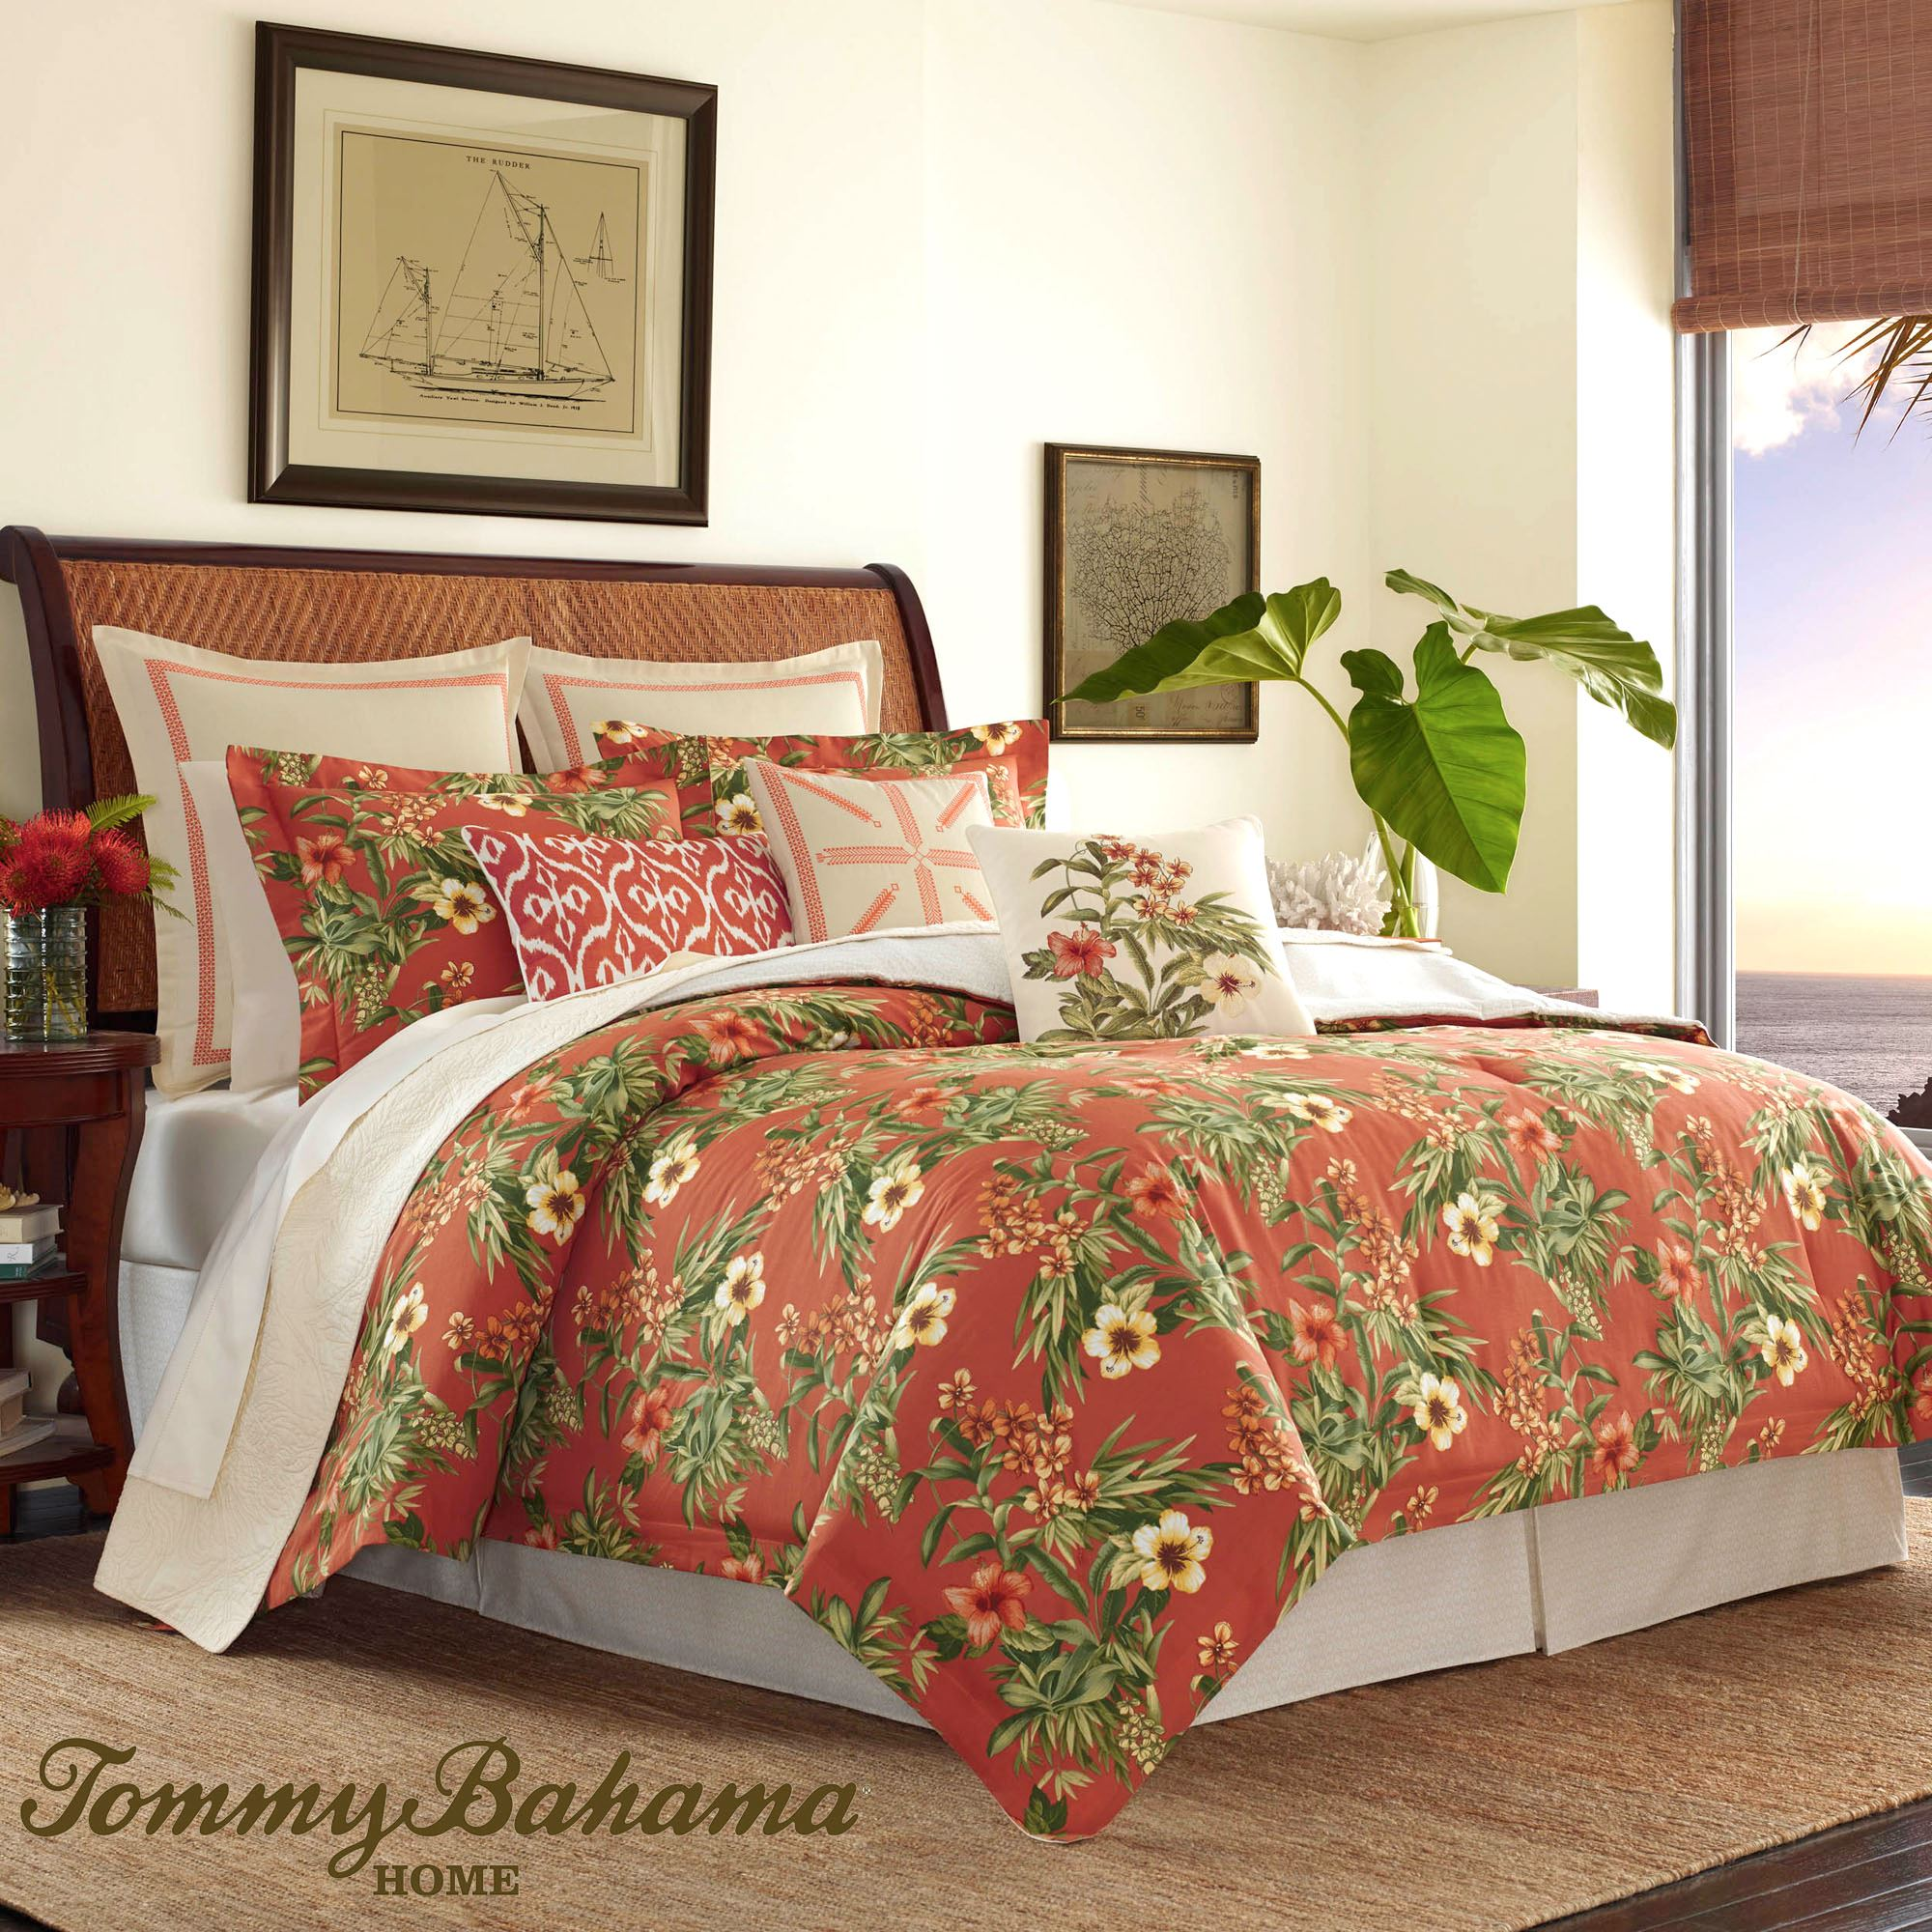 tommy by comforter set mangrove bedding bahama king pin tropical